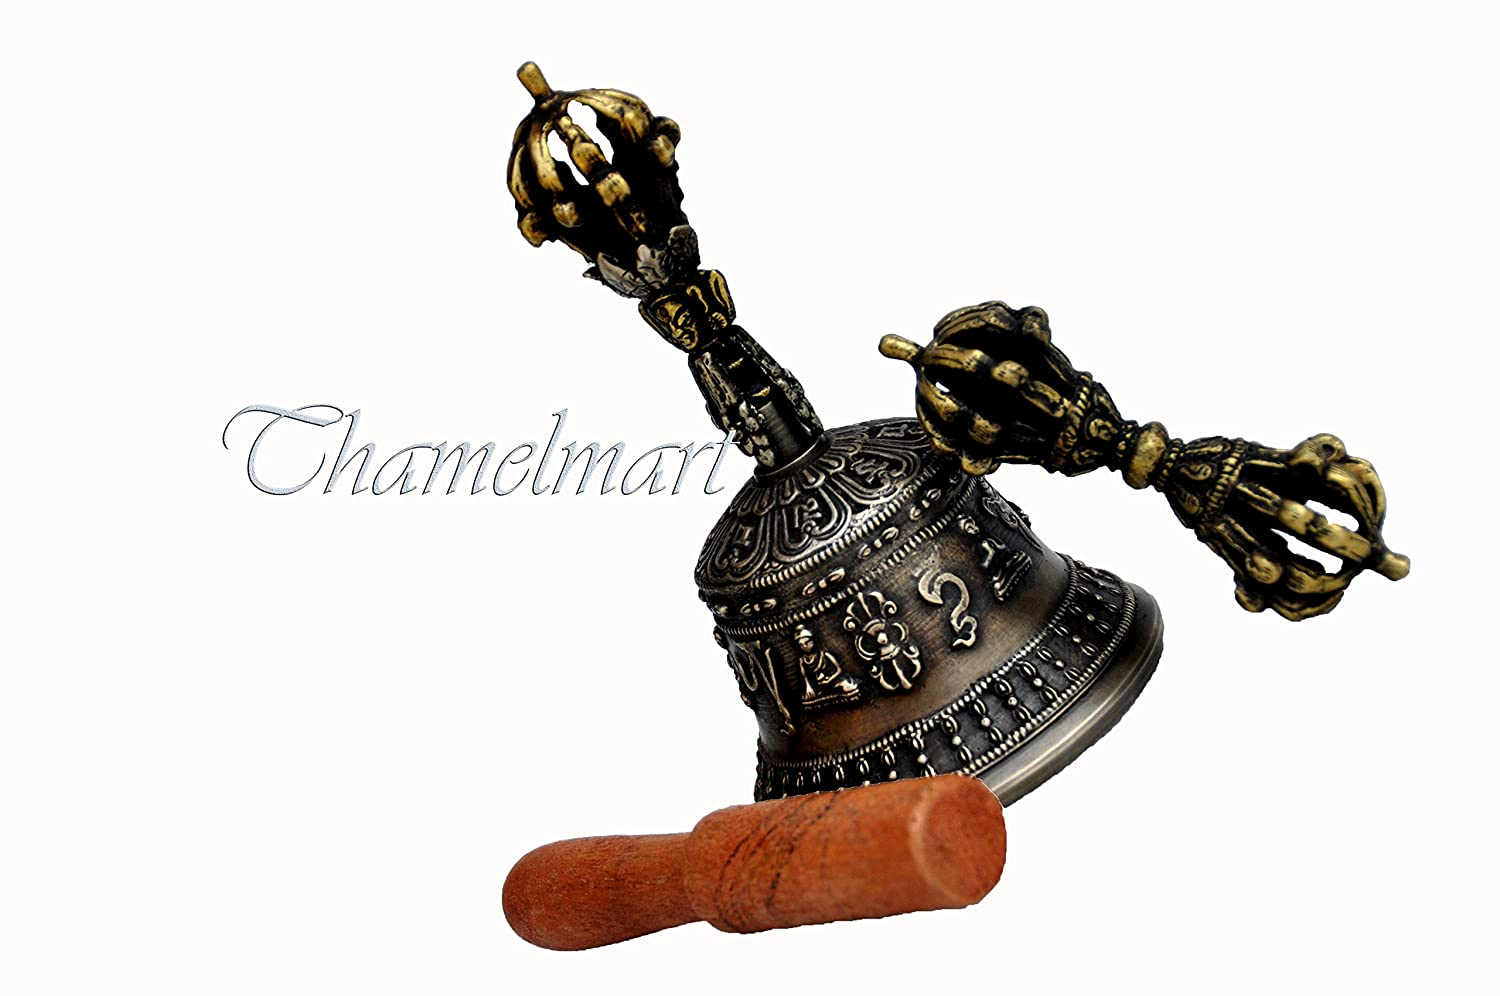 Tibetan Buddhist Meditation Bell and Dorje Set - Bell of Enlightenment from Nepal 6 Inches thamelmart 4334197947